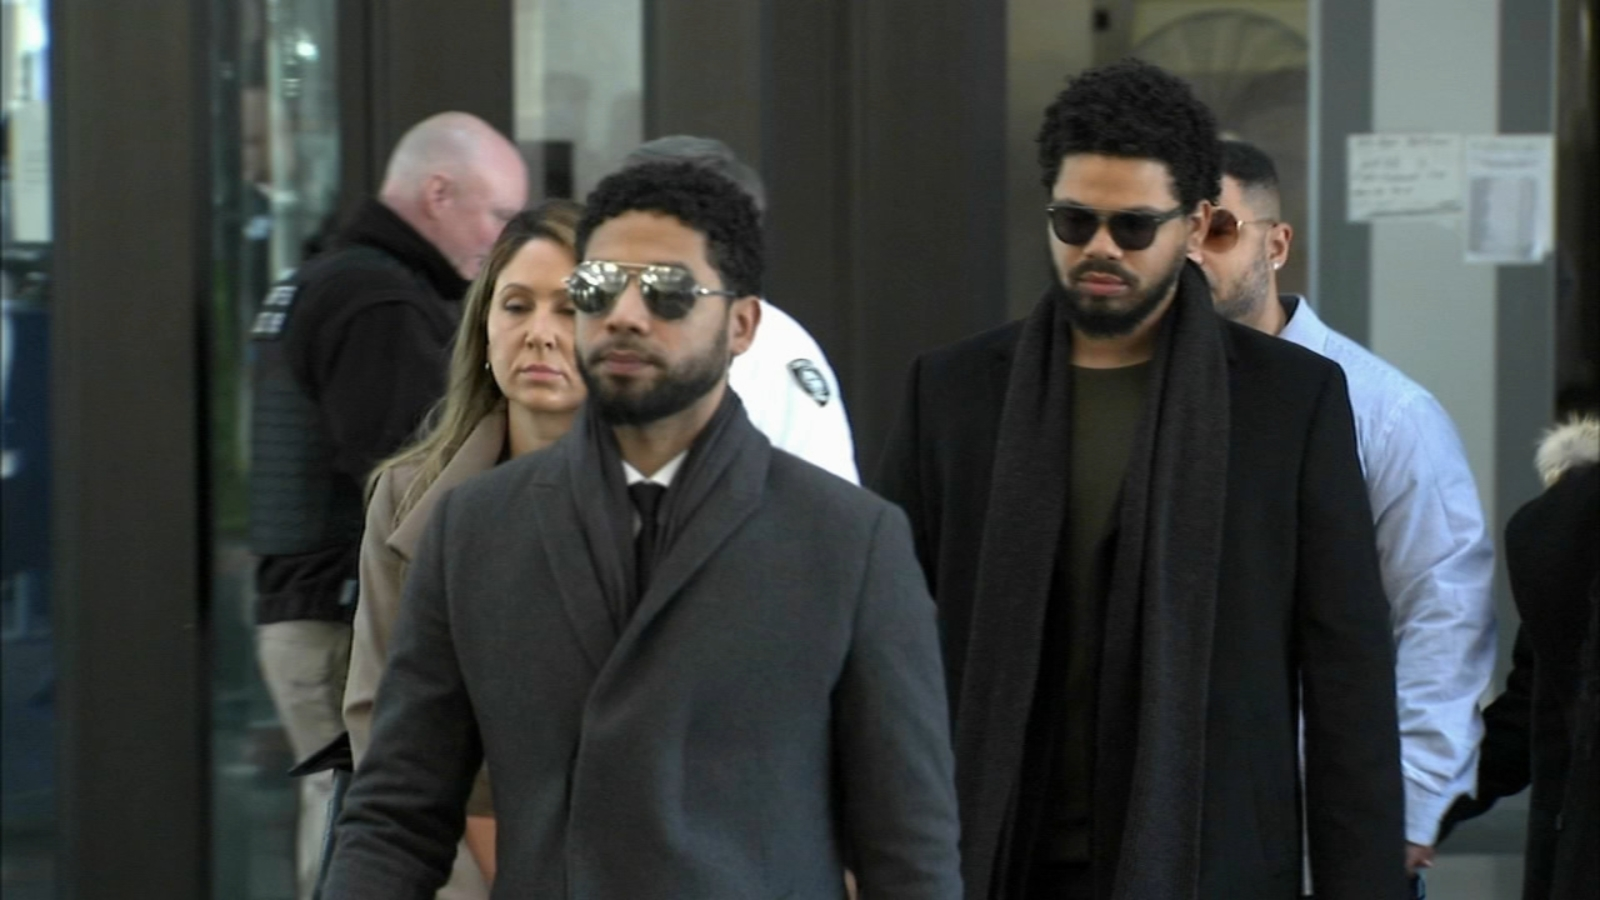 Jussie Smollett lawyers: Actor unaware alleged attack would trigger 'extensive investigation'